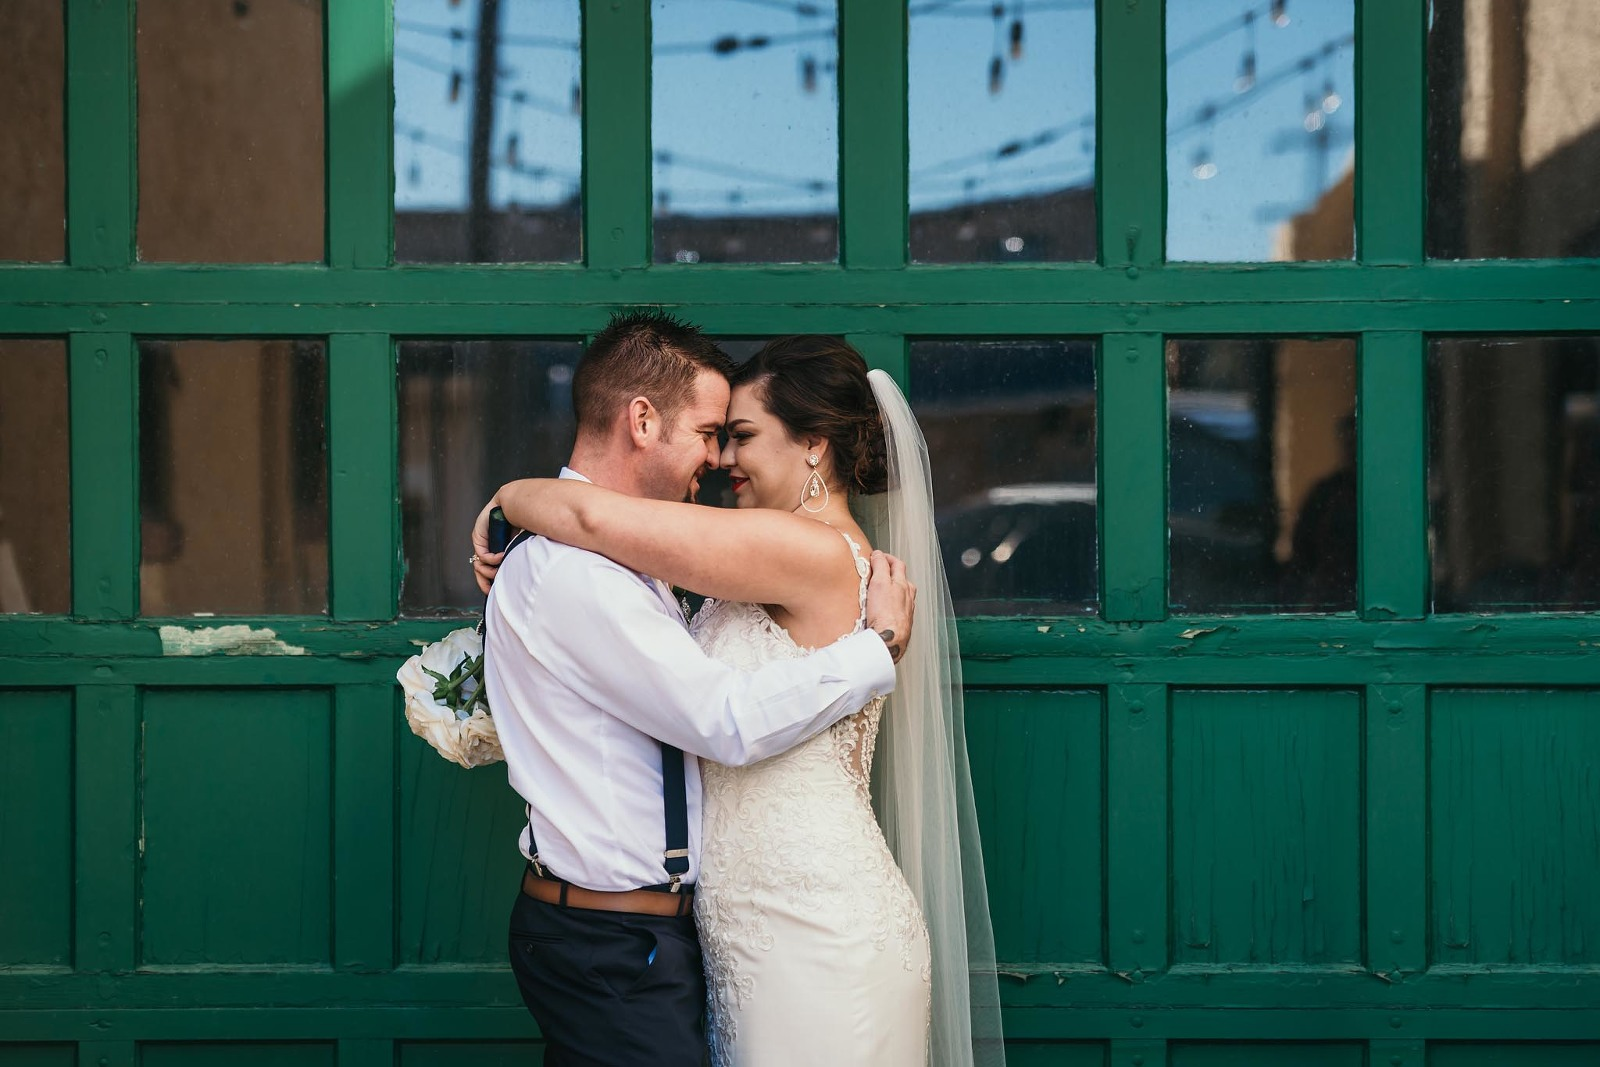 Bride and groom embracing during outdoor portraits in Auburn, Indiana by Kasey Wallace Photography